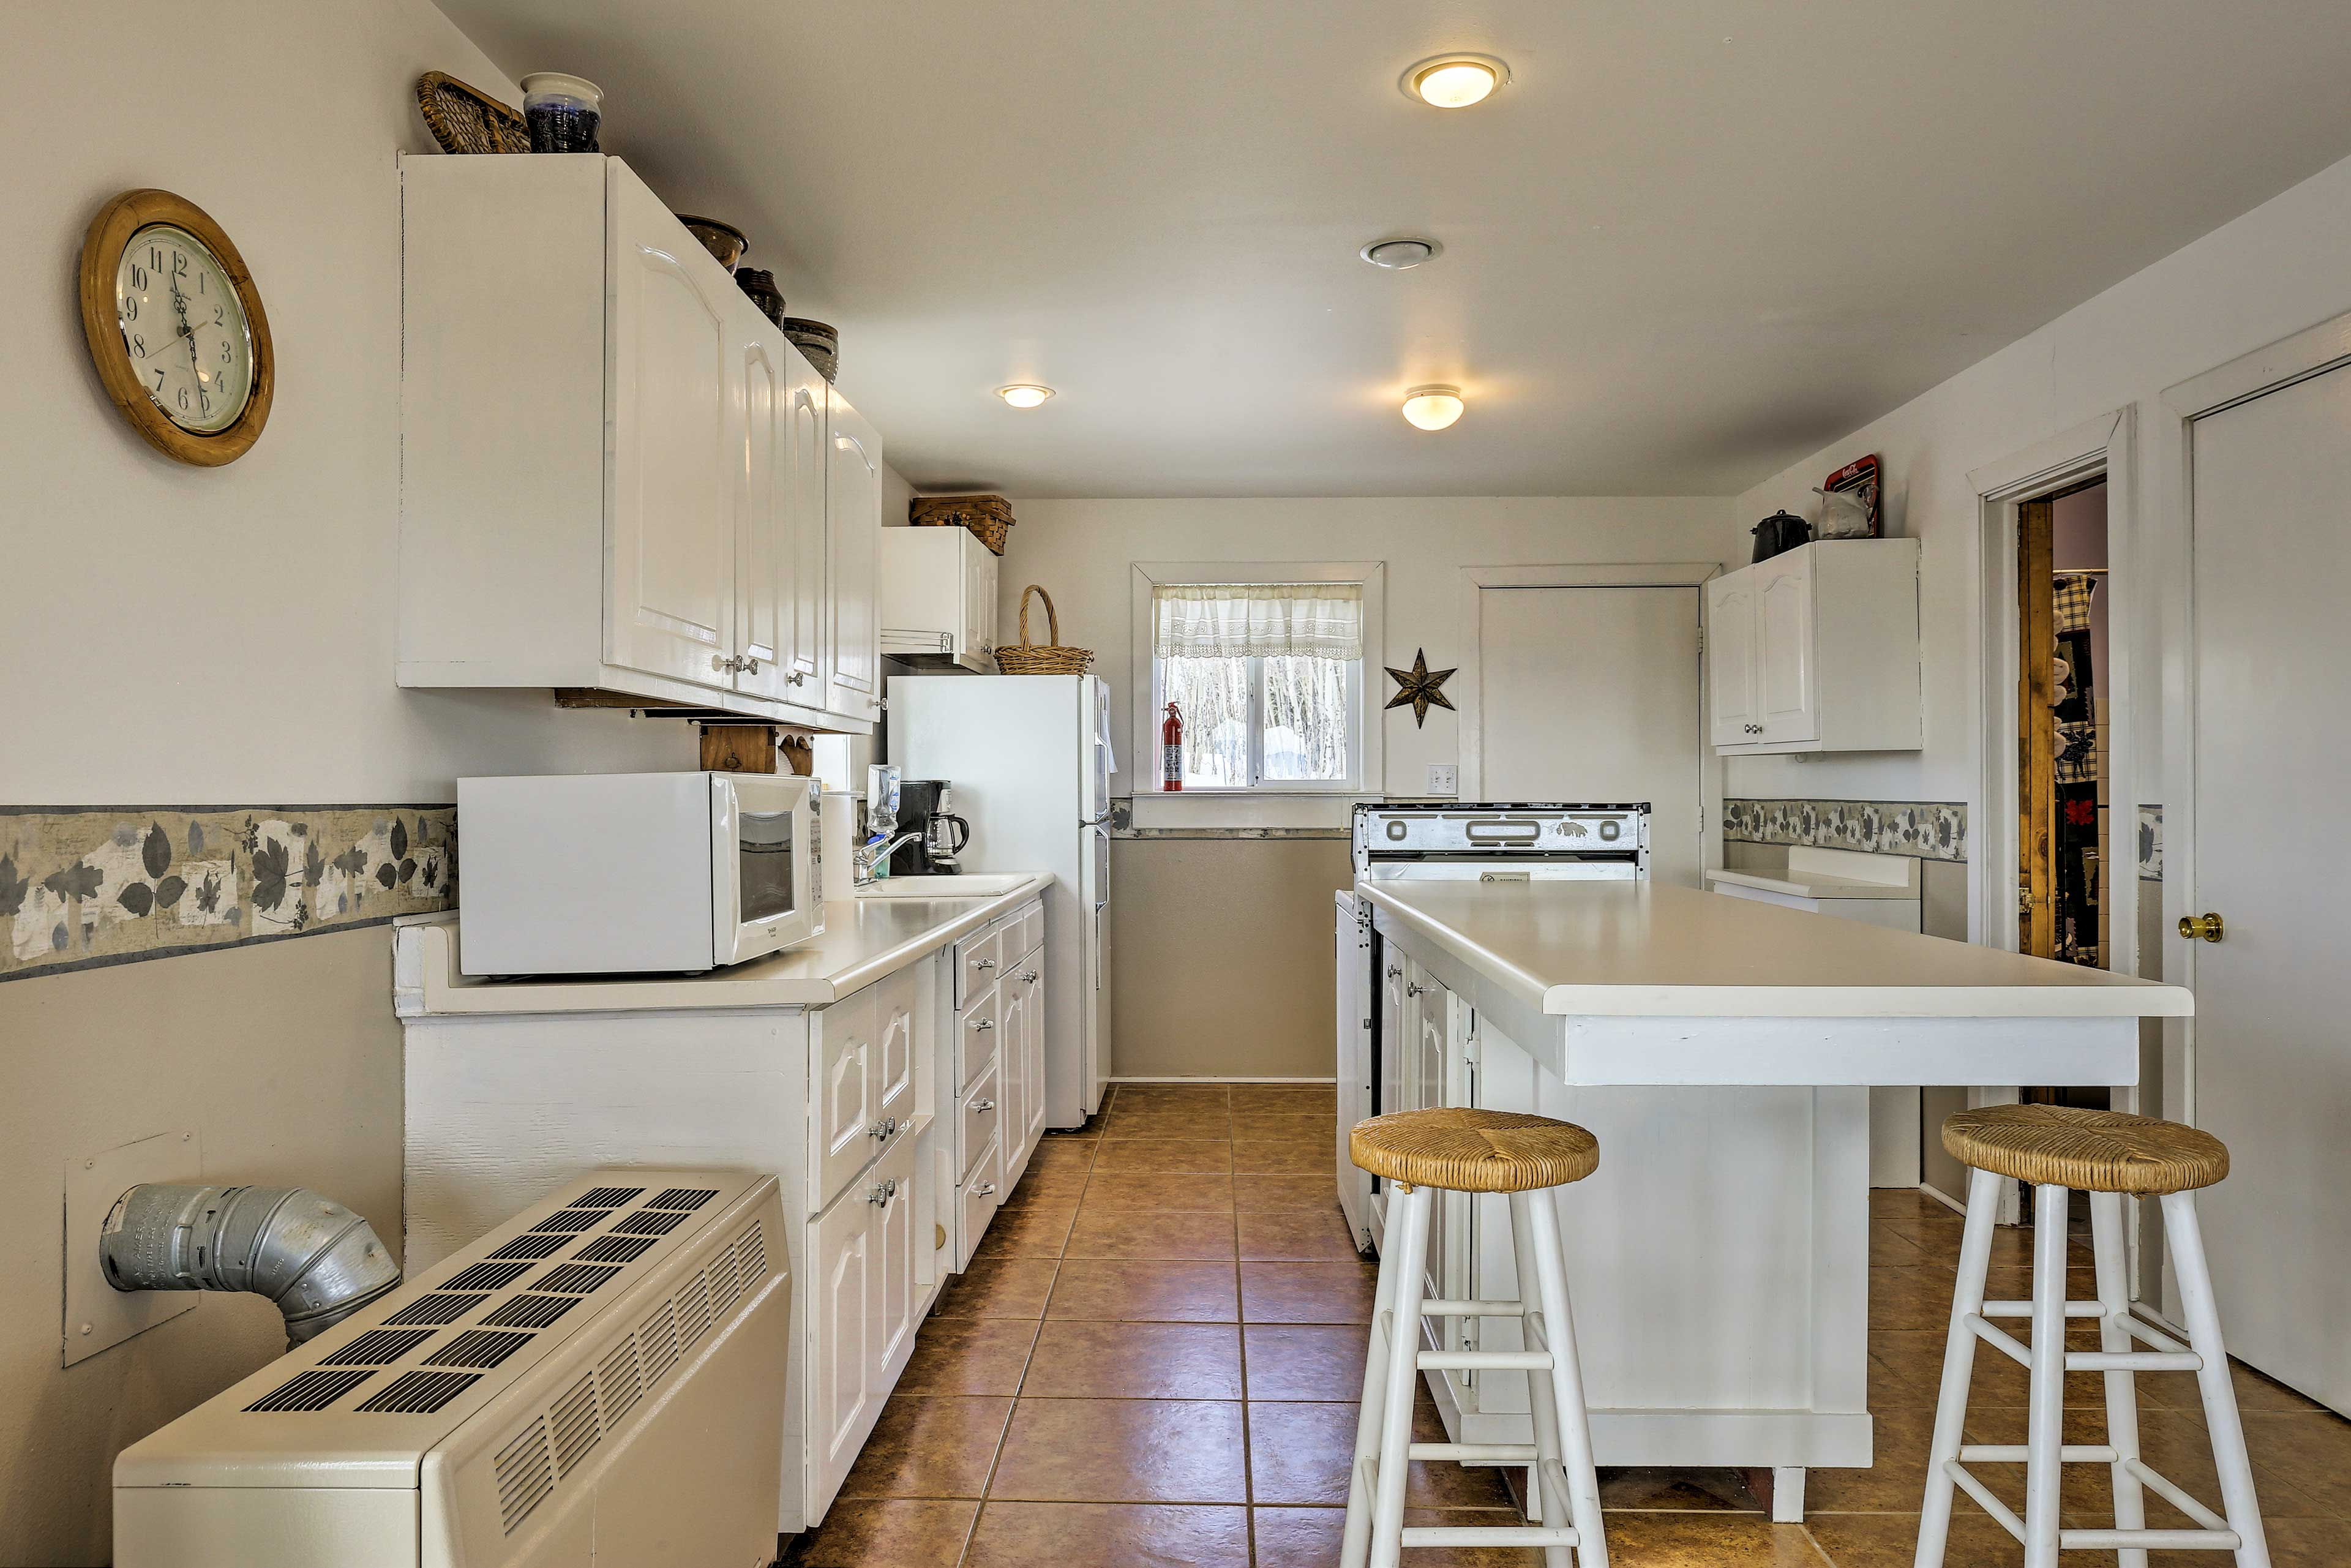 The well-equipped kitchen makes it easy to prepare home-cooked meals.